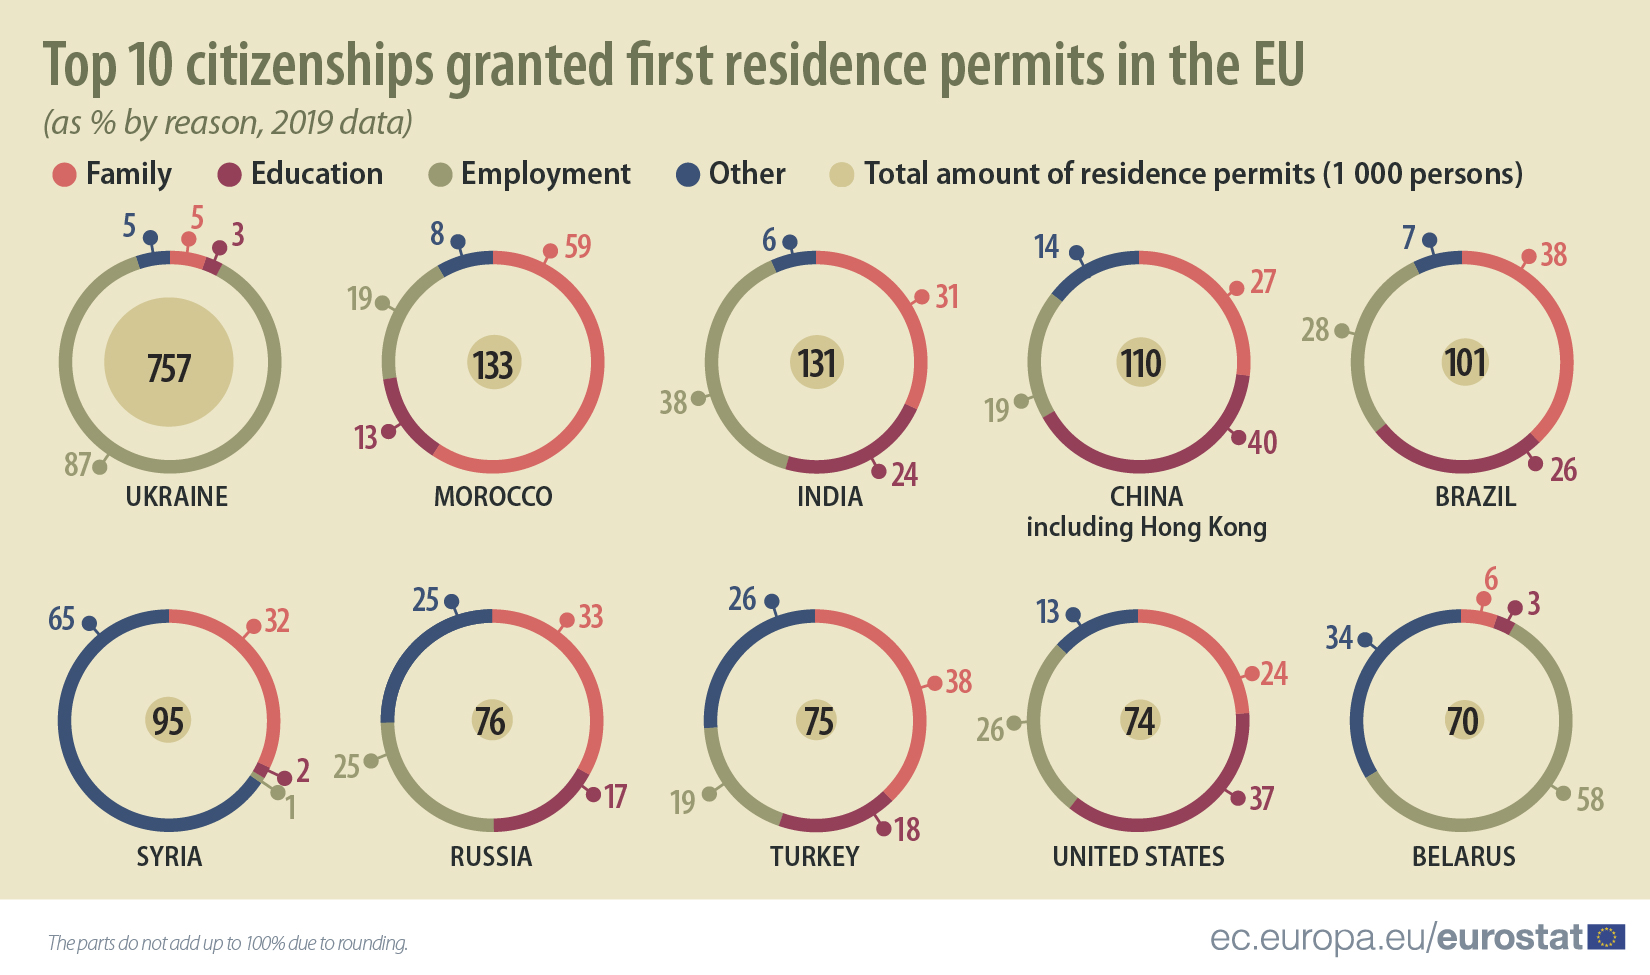 Top 10 citizenships granted first residence permits in the EU